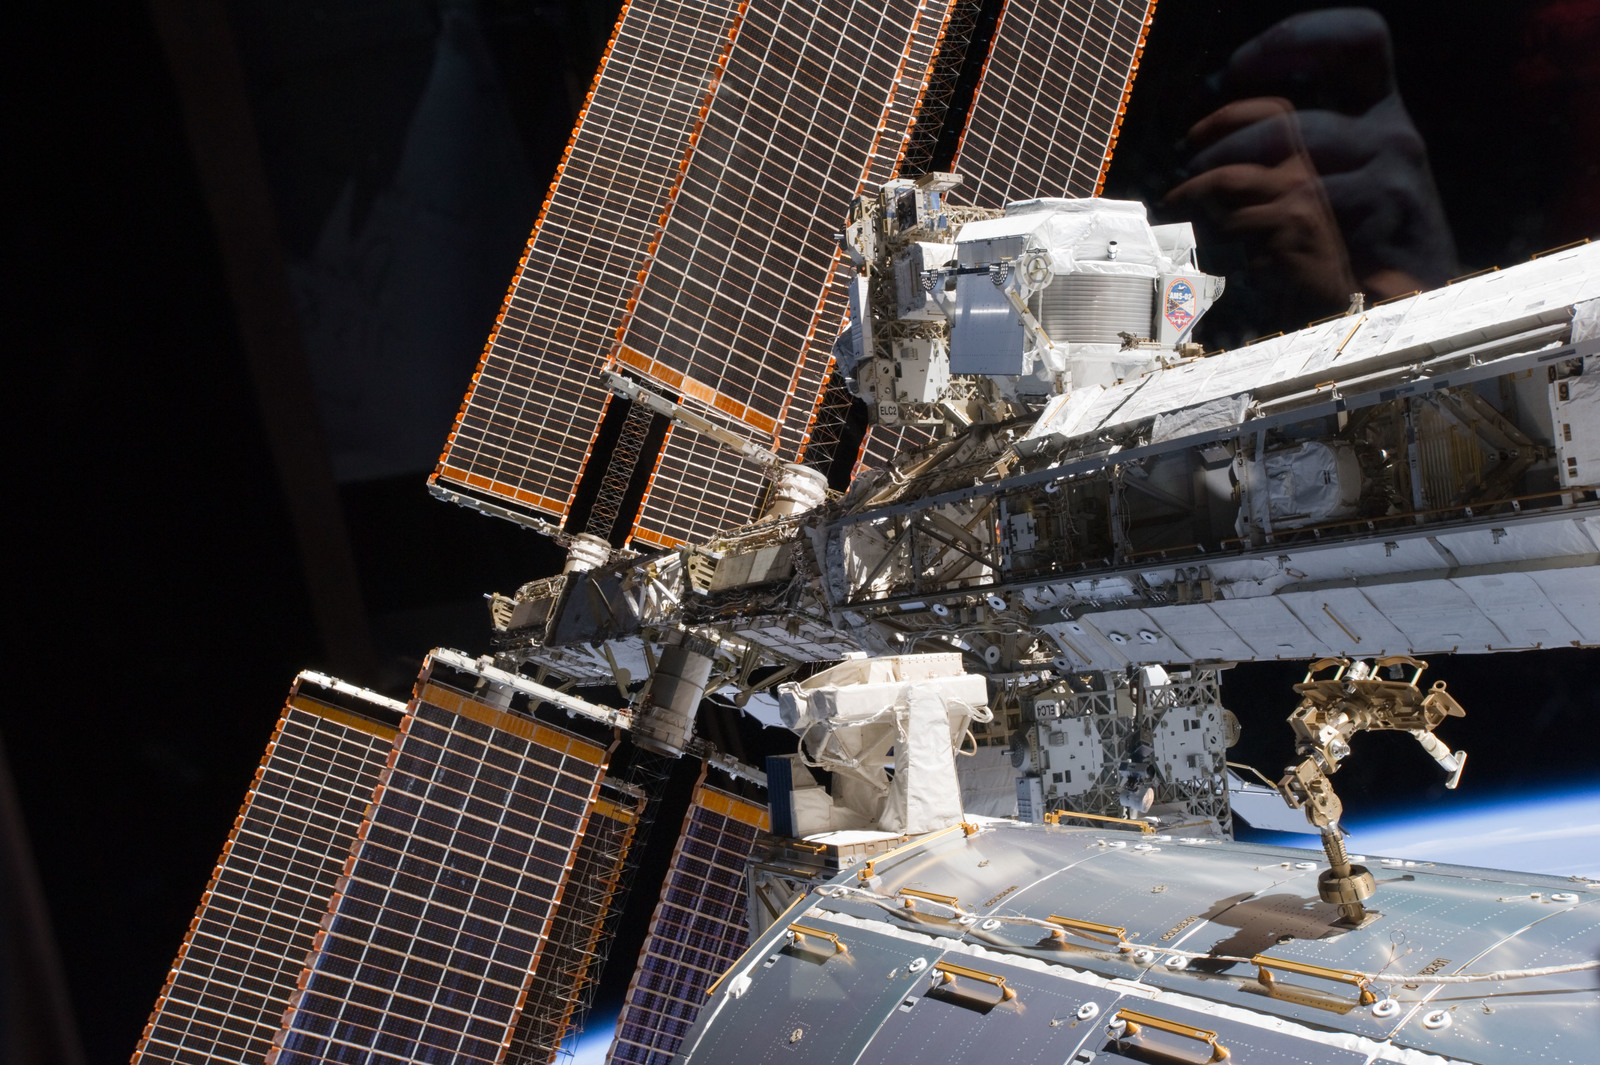 S134E007531 - STS-134 - View of the AMS-2 mounted on the S3 Truss